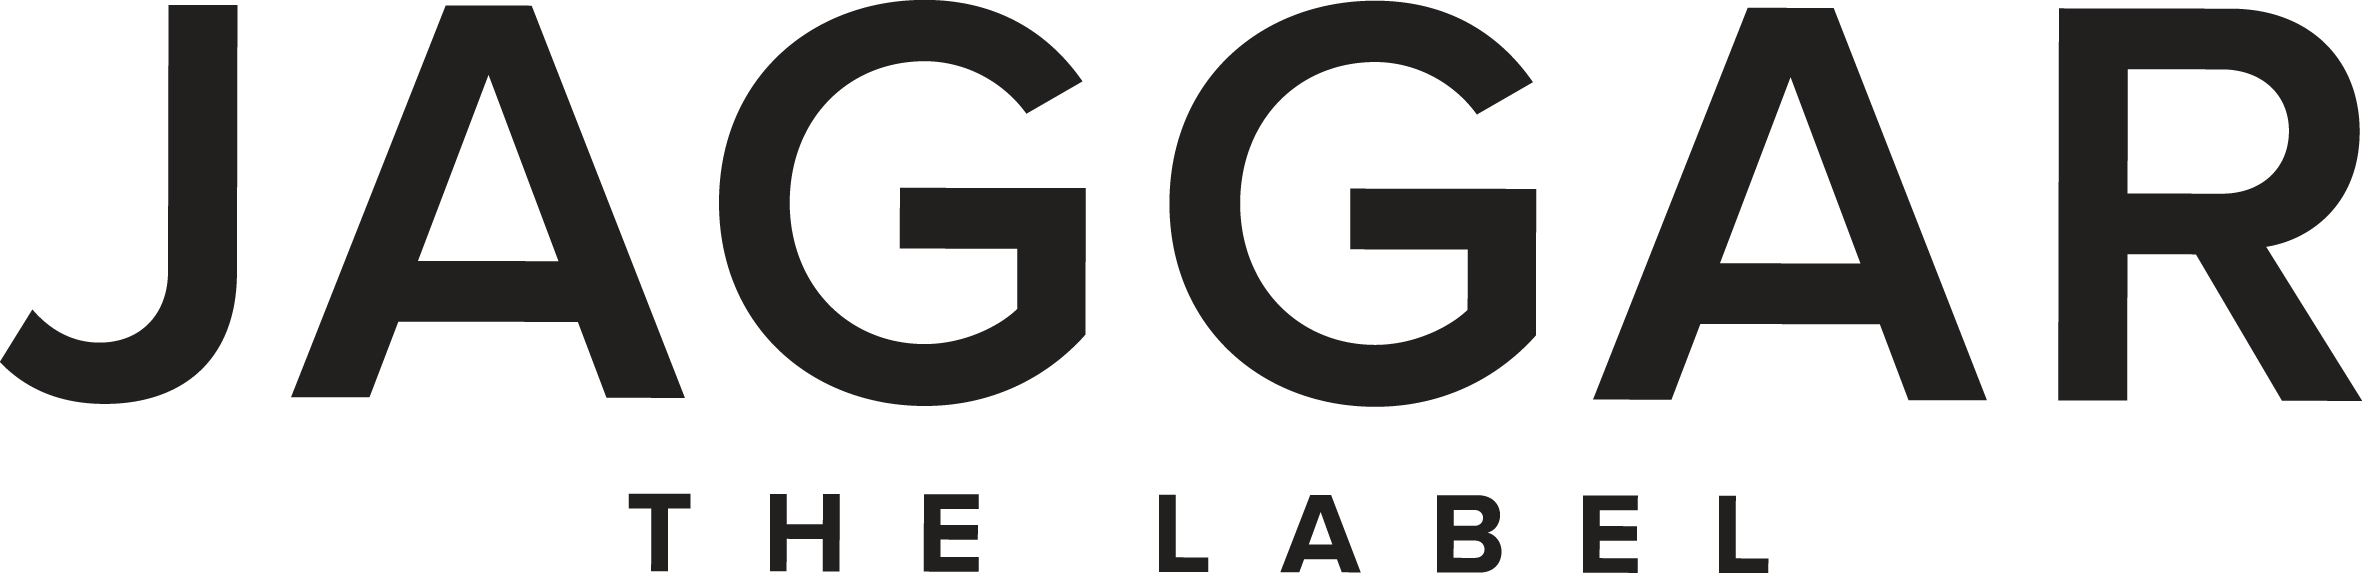 Jaggar the Label